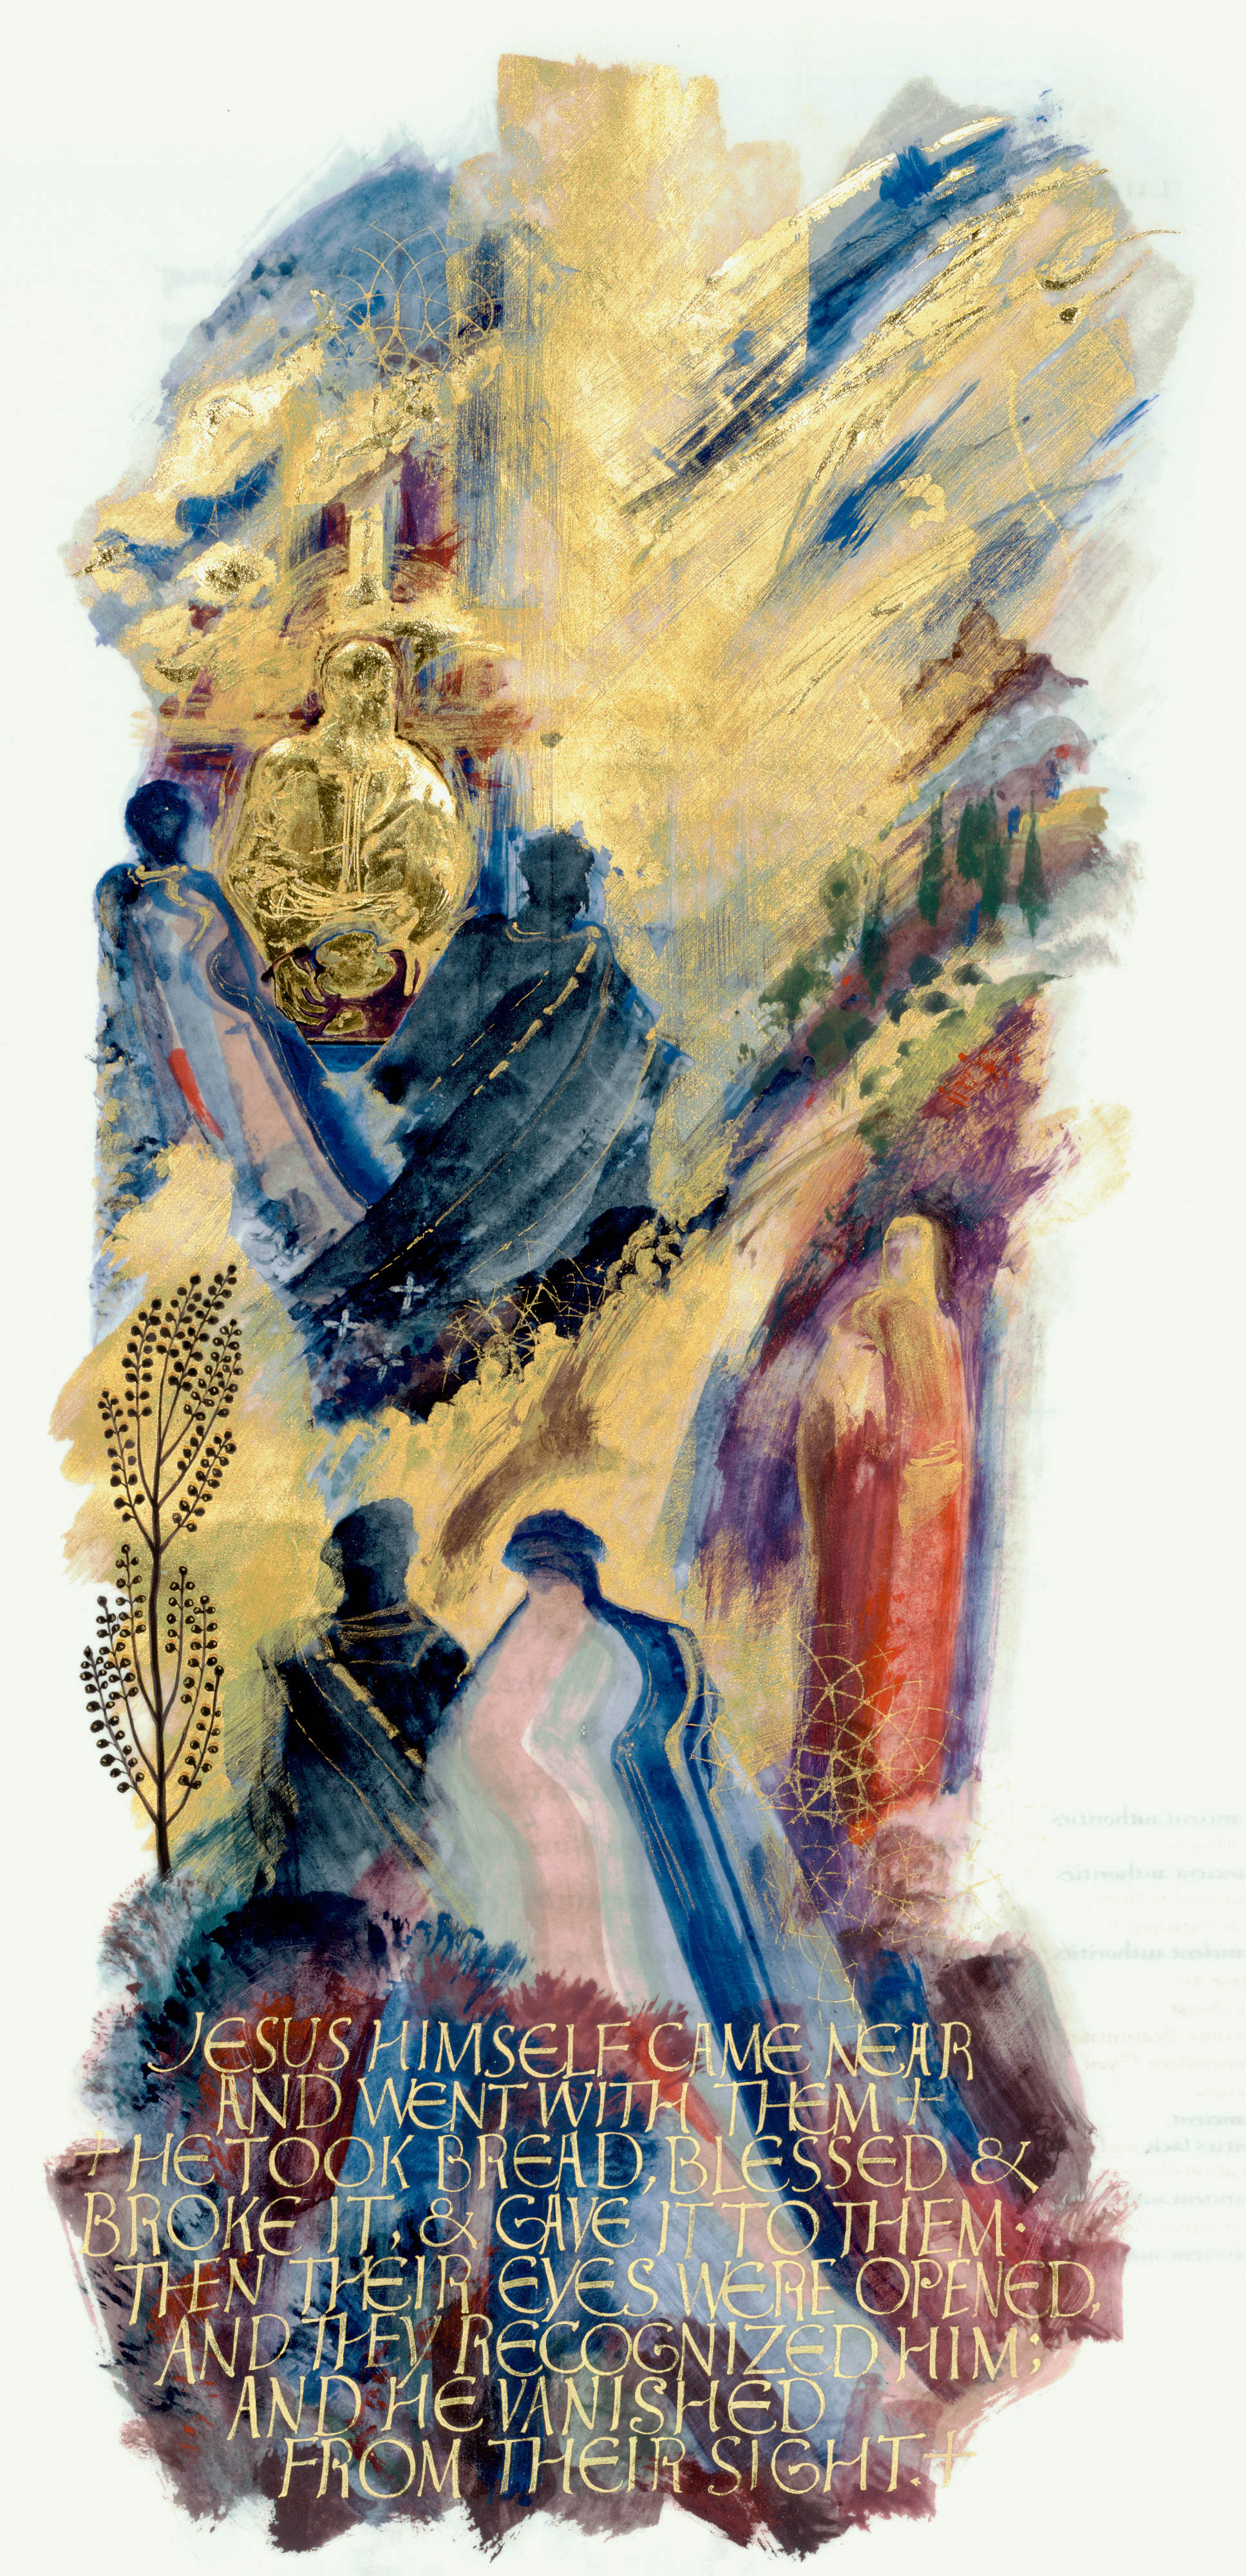 Road to Emmaus, Sally Mae Joseph, Copyright 2002, The Saint John's Bible, Saint John's University, Collegeville, Minnesota USA. Used by permission. All rights reserved.